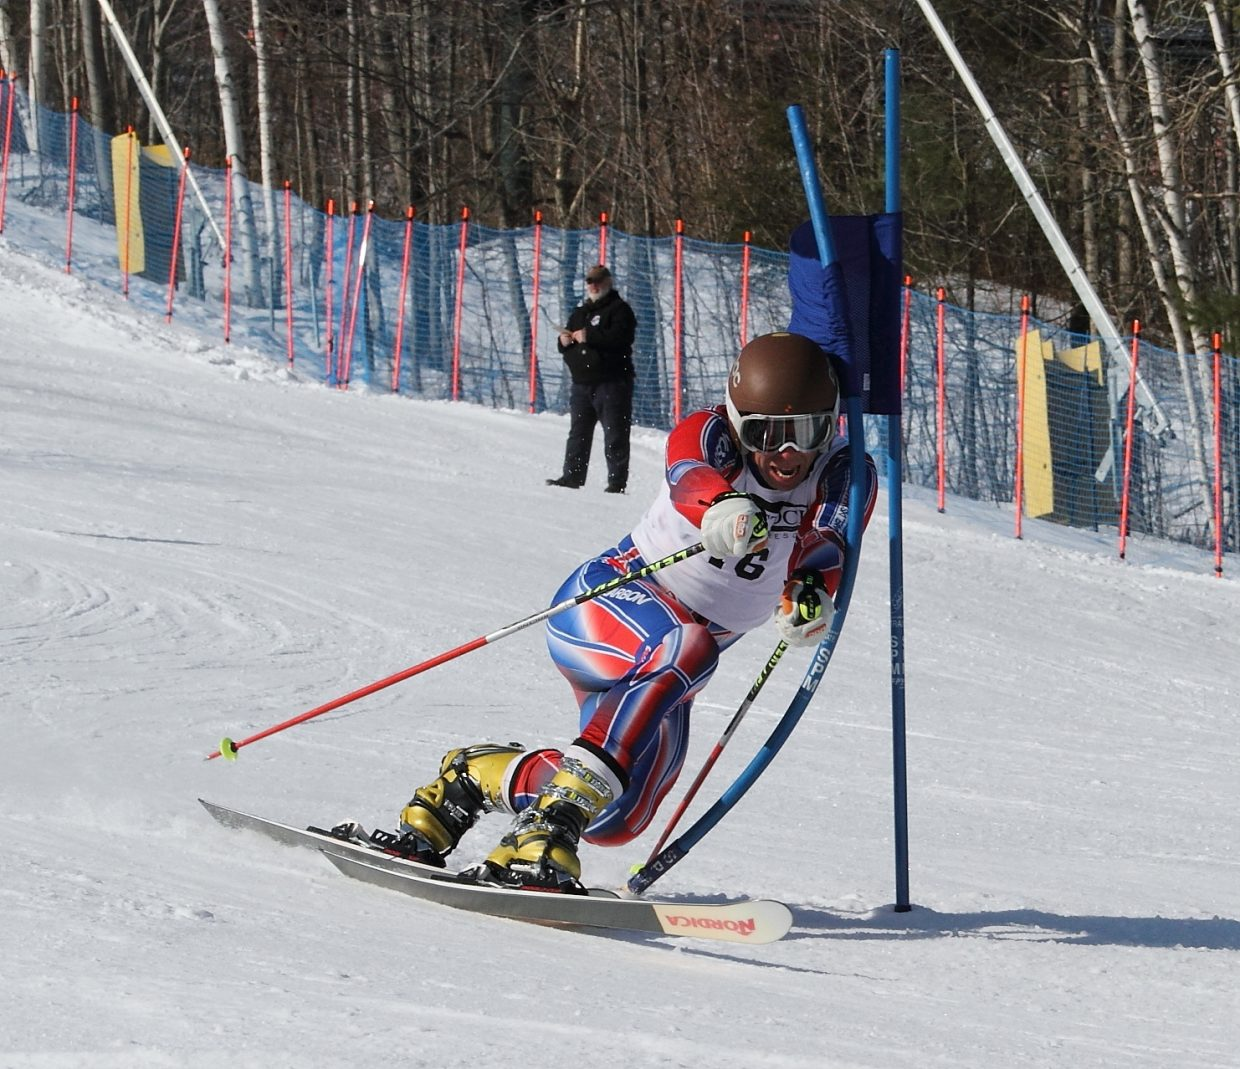 Steamboat Springs Telemark skier Charlie Dresen skis around a gate at the U.S. Telemark National Championships at Gunstock Mountain Resort in New Hampshire. Dresen put down several solid days in winning.